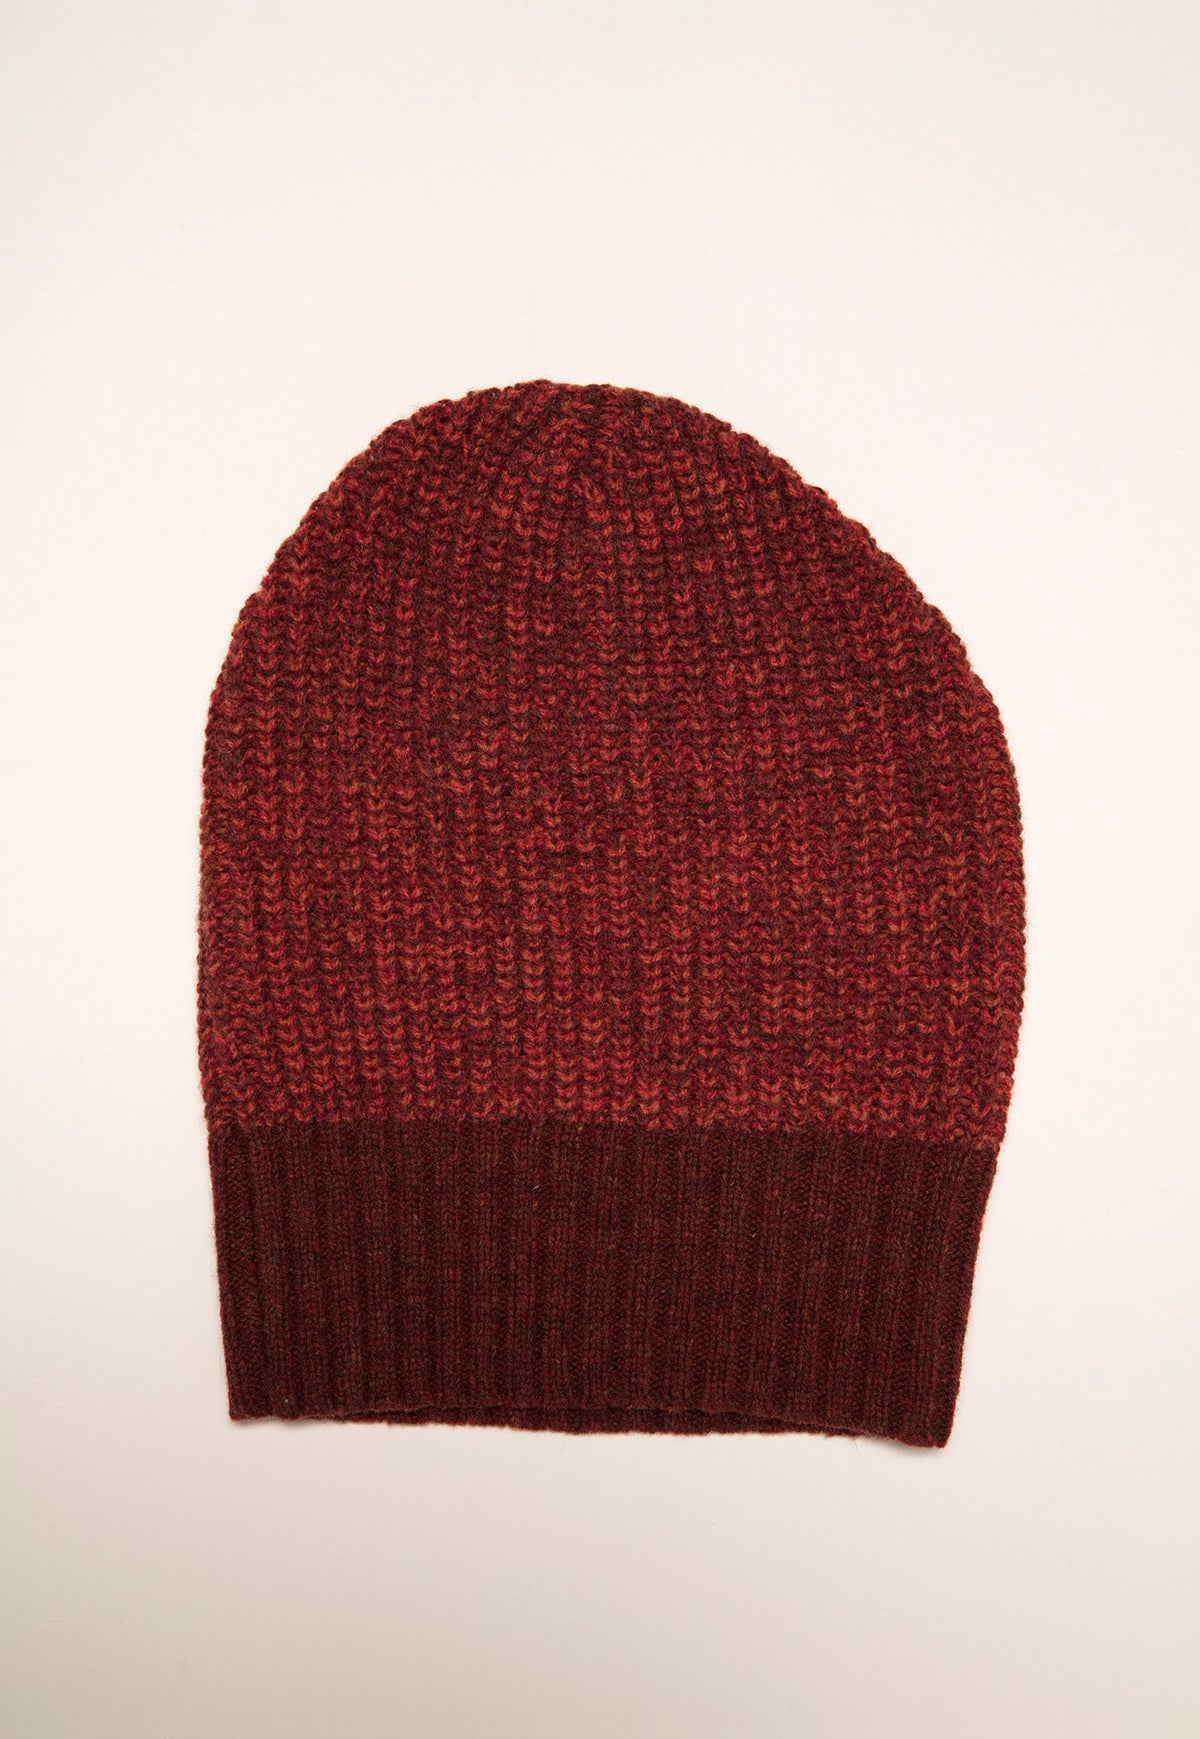 Rib Knit Beanie - Maple